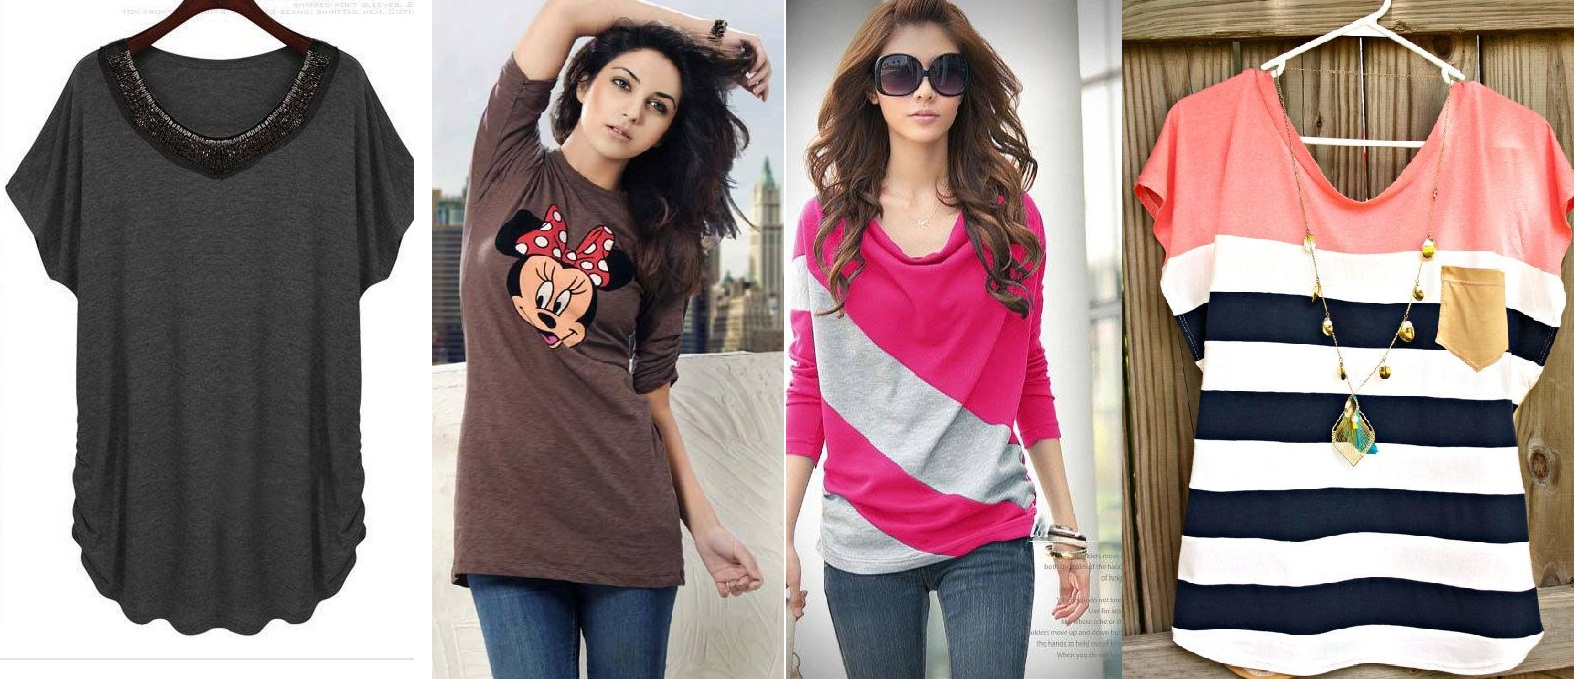 Ladies Stylish Summer T Shirts Collection 2015 2016